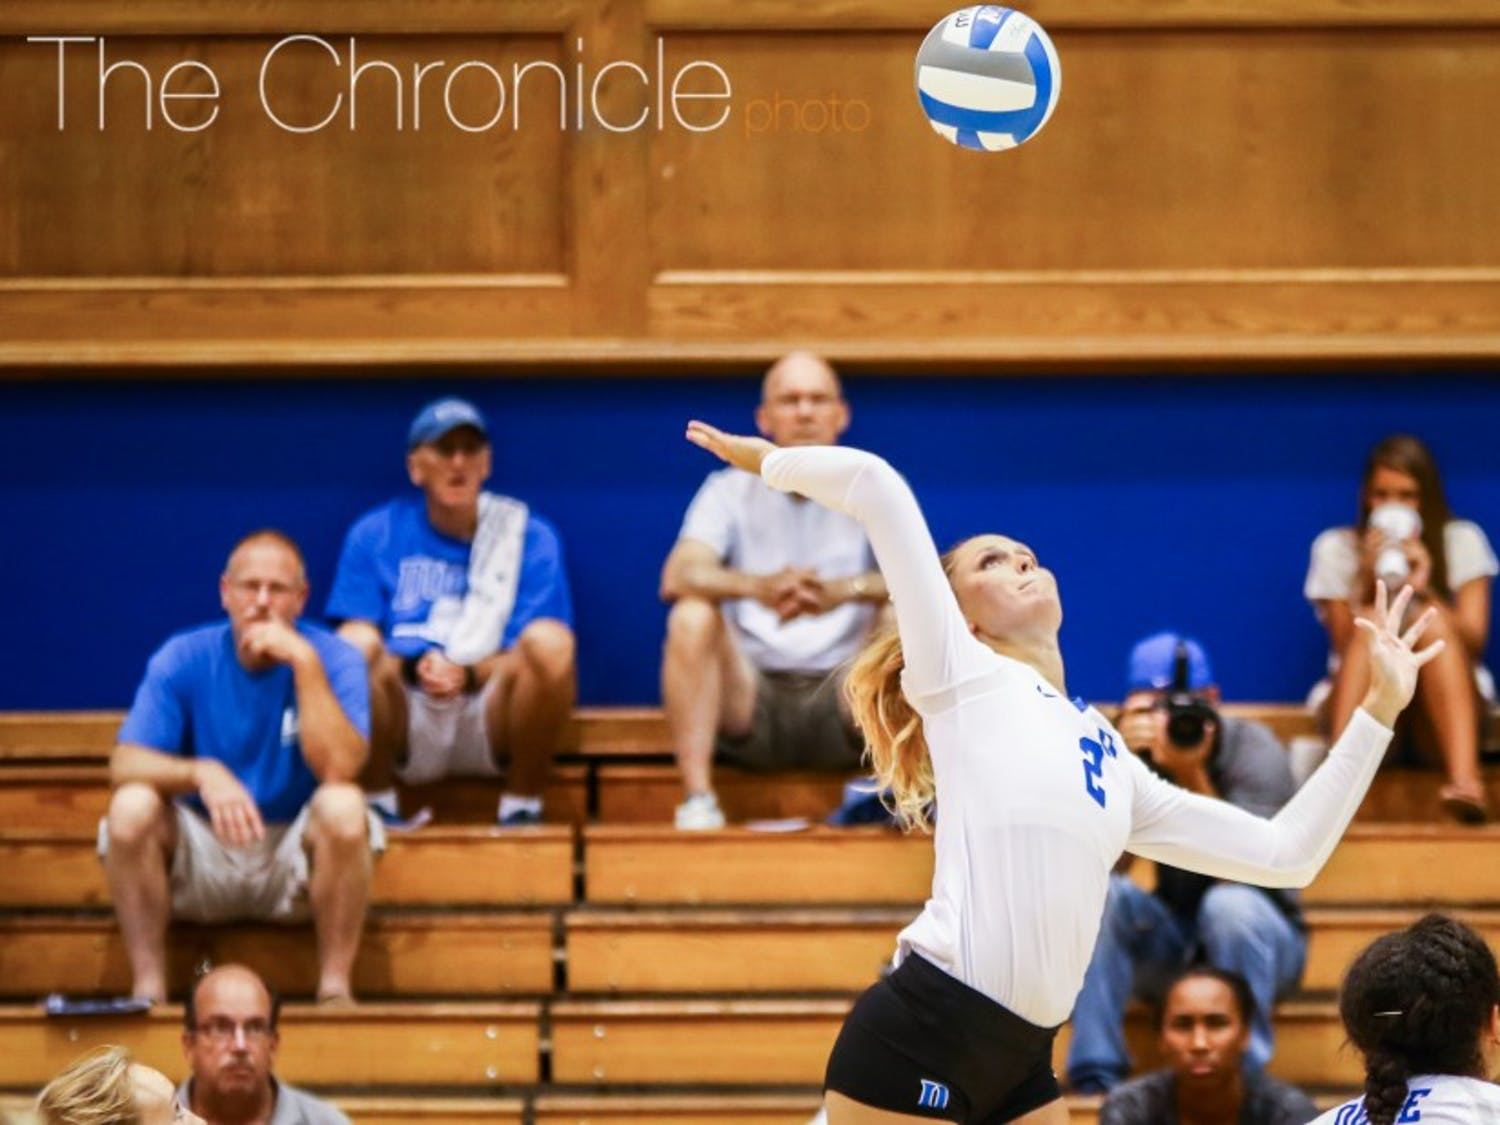 Sophomore Jessi Bartholomew paced the Blue Devils with 15 kills Saturday evening in a dramatic win at Virginia.